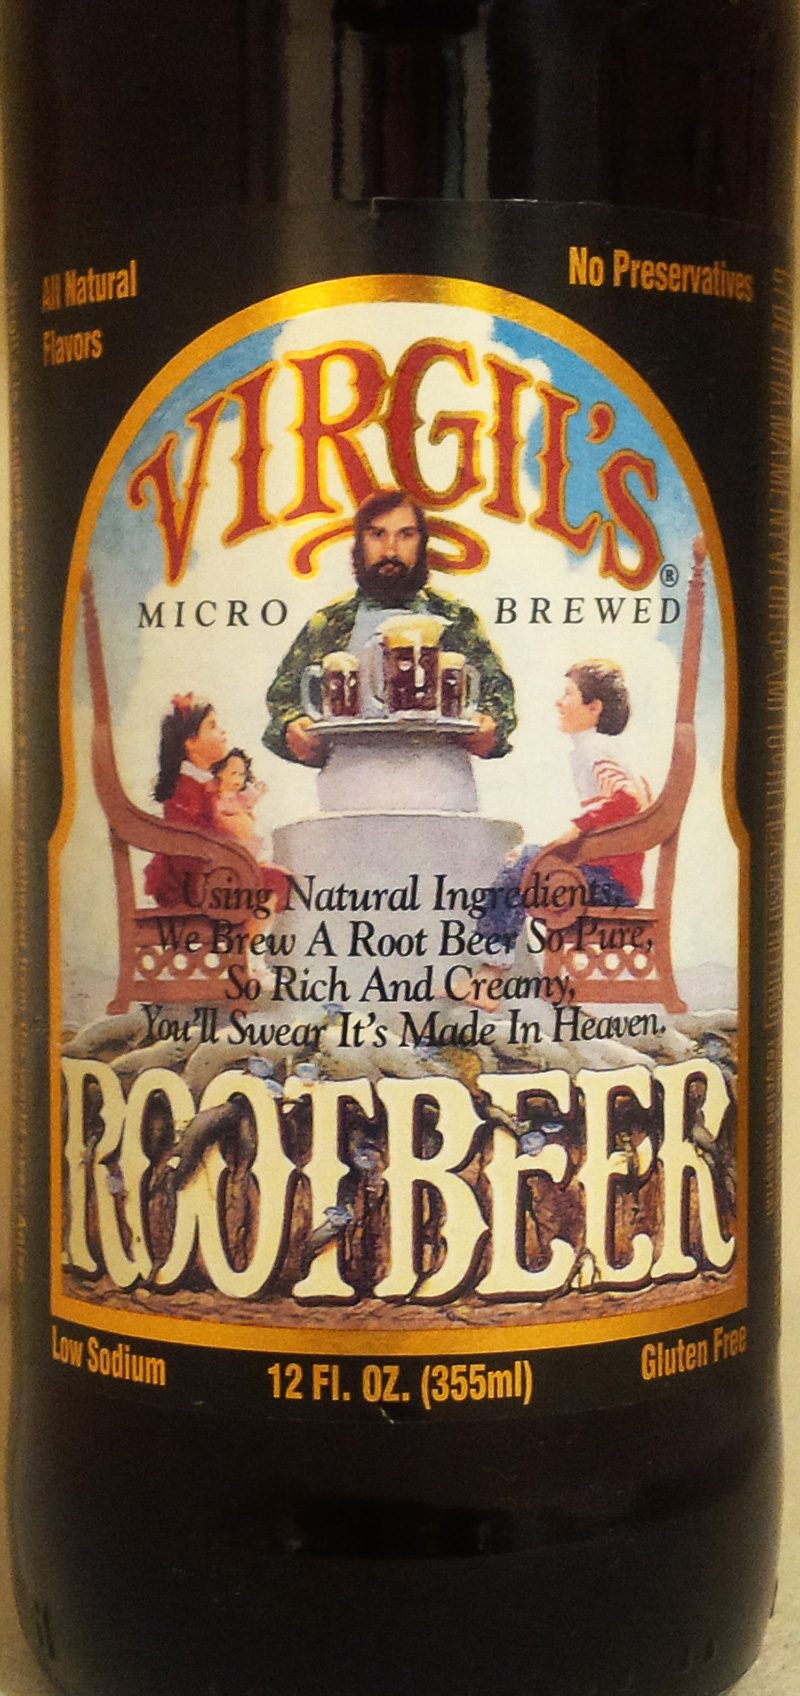 Virgil's Micro Brewed Root Beer